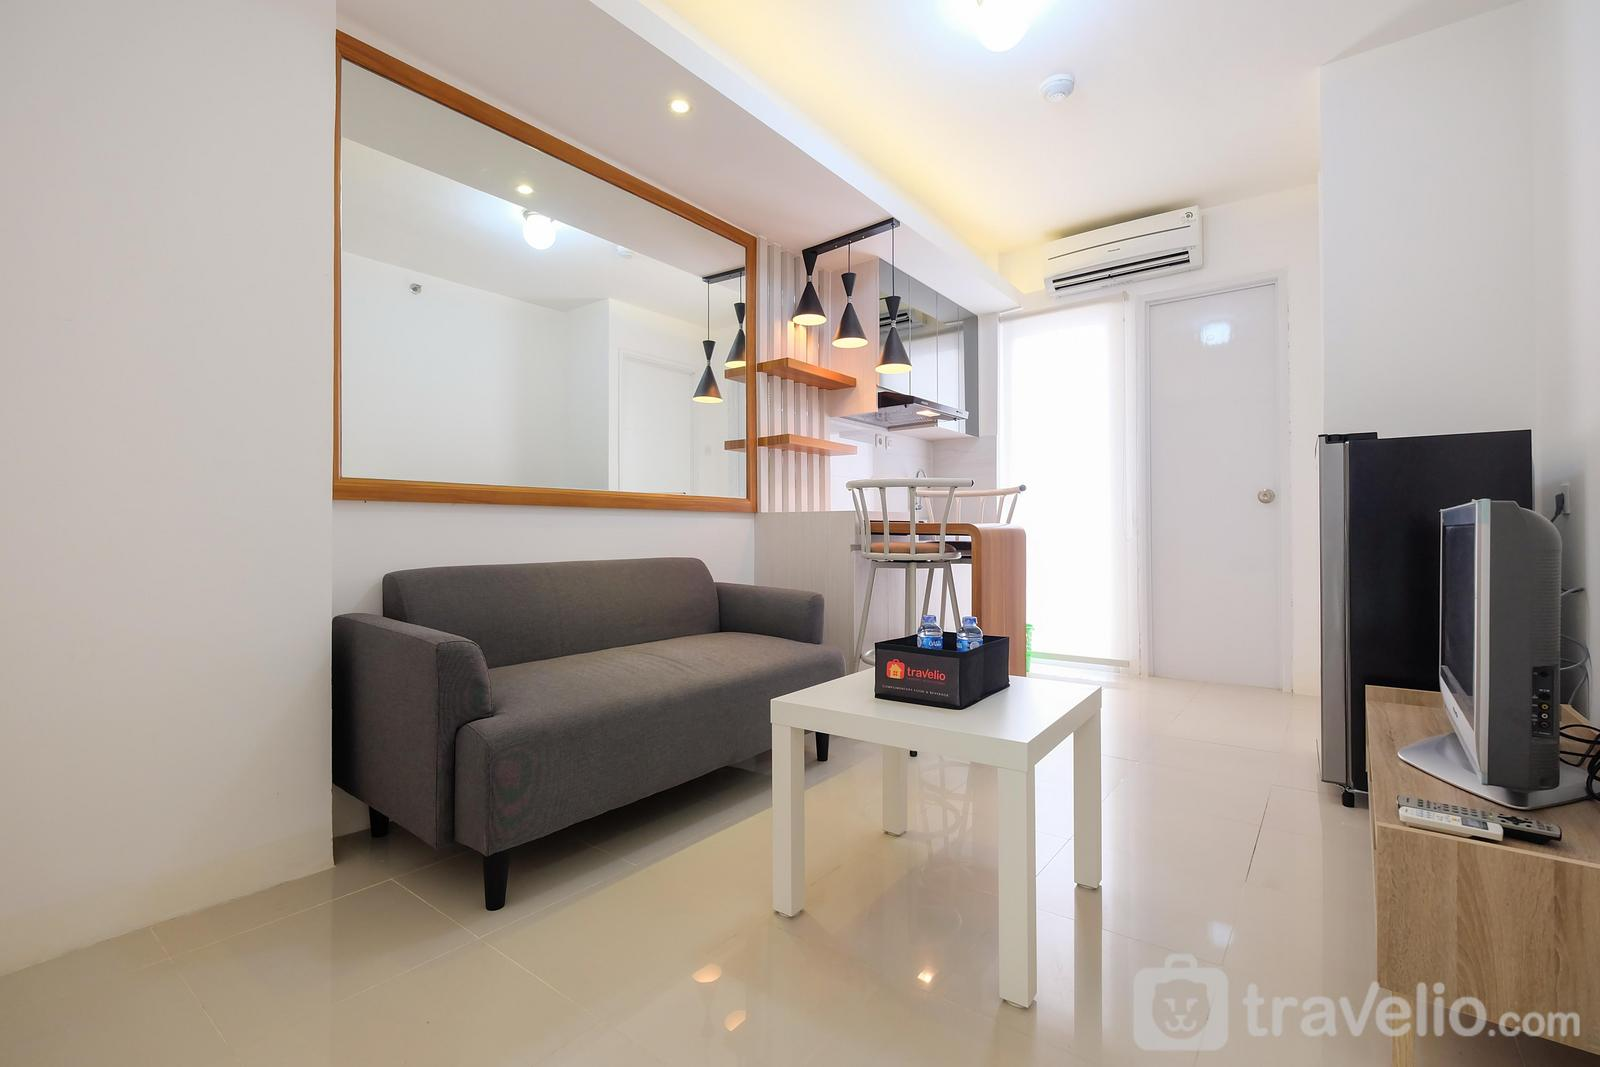 Bassura City Cipinang - Compact 2BR Bassura City Apartment near Jatinegara By Travelio